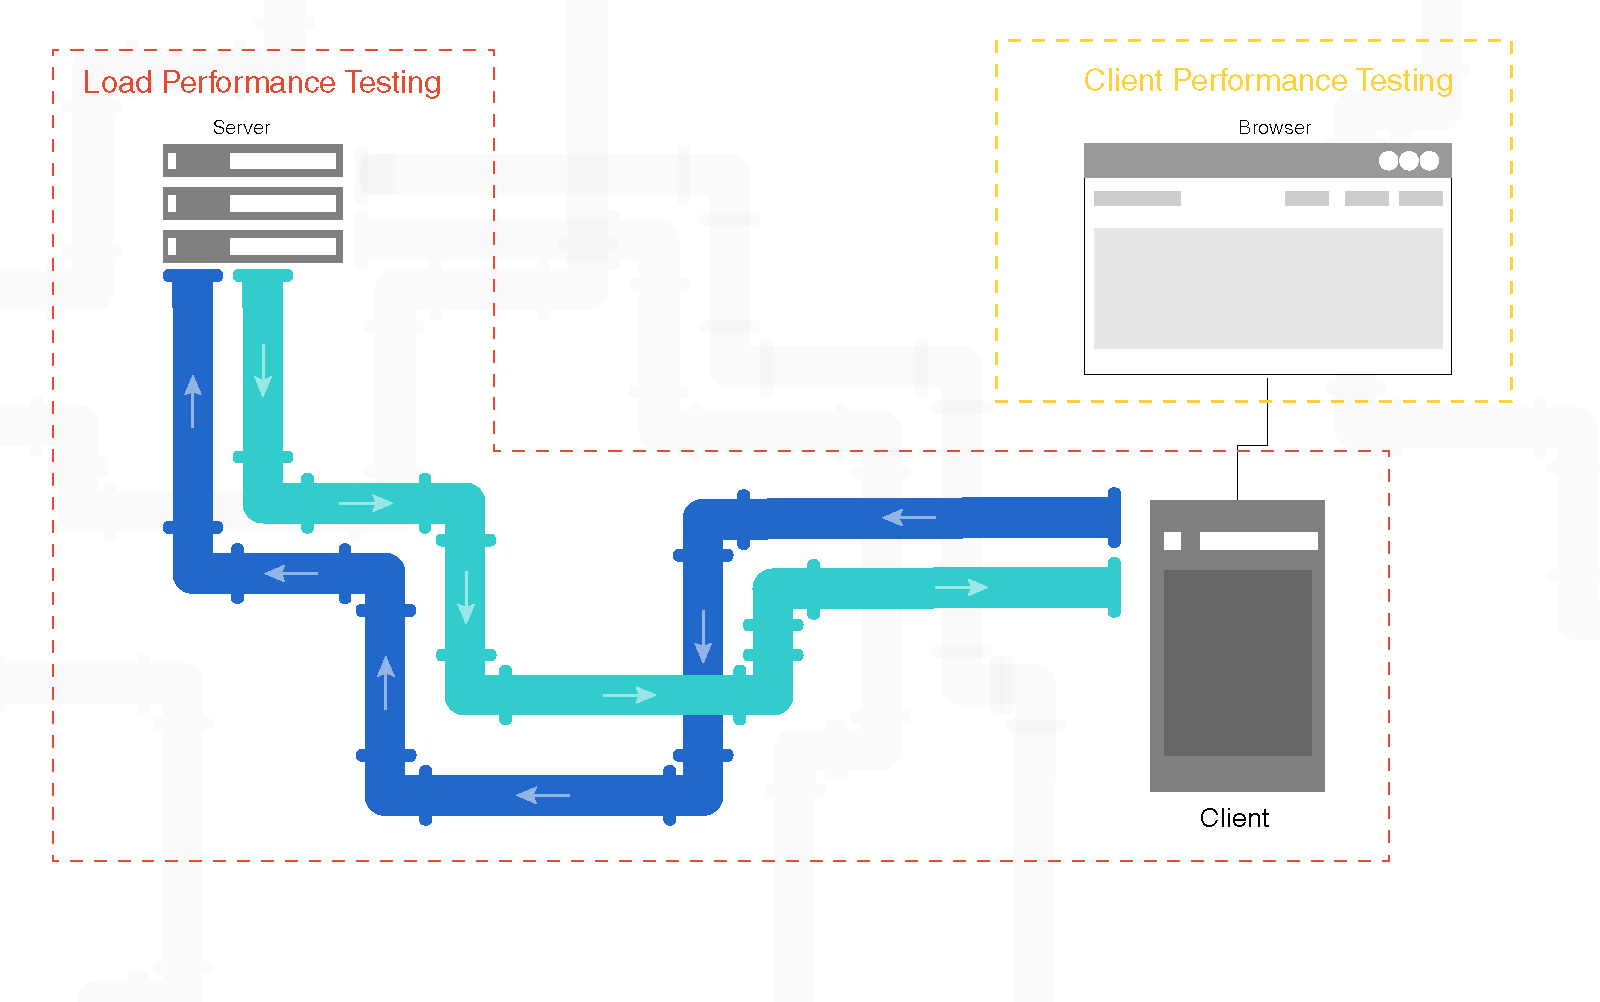 This diagram represents the focuses of Nouvolas product, Load Performance Testing and Client Performance Testing, and their boundaries across the Server-Client-Browser web relationship.